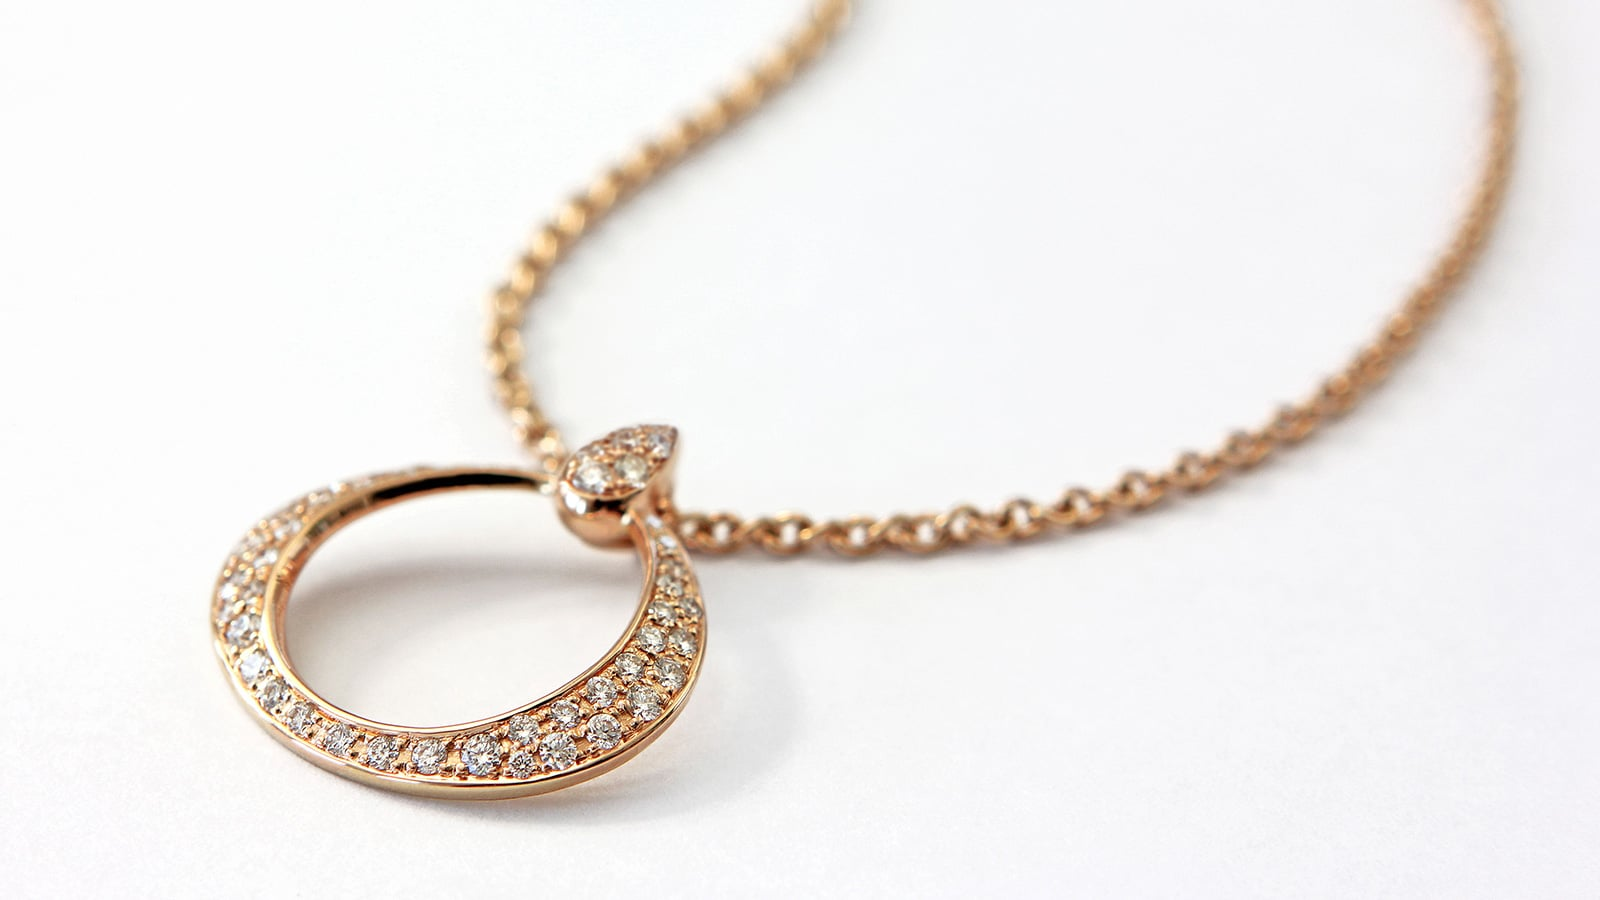 OMEGA DEWDROP: A DELICATE AND FEMININE COLLECTION